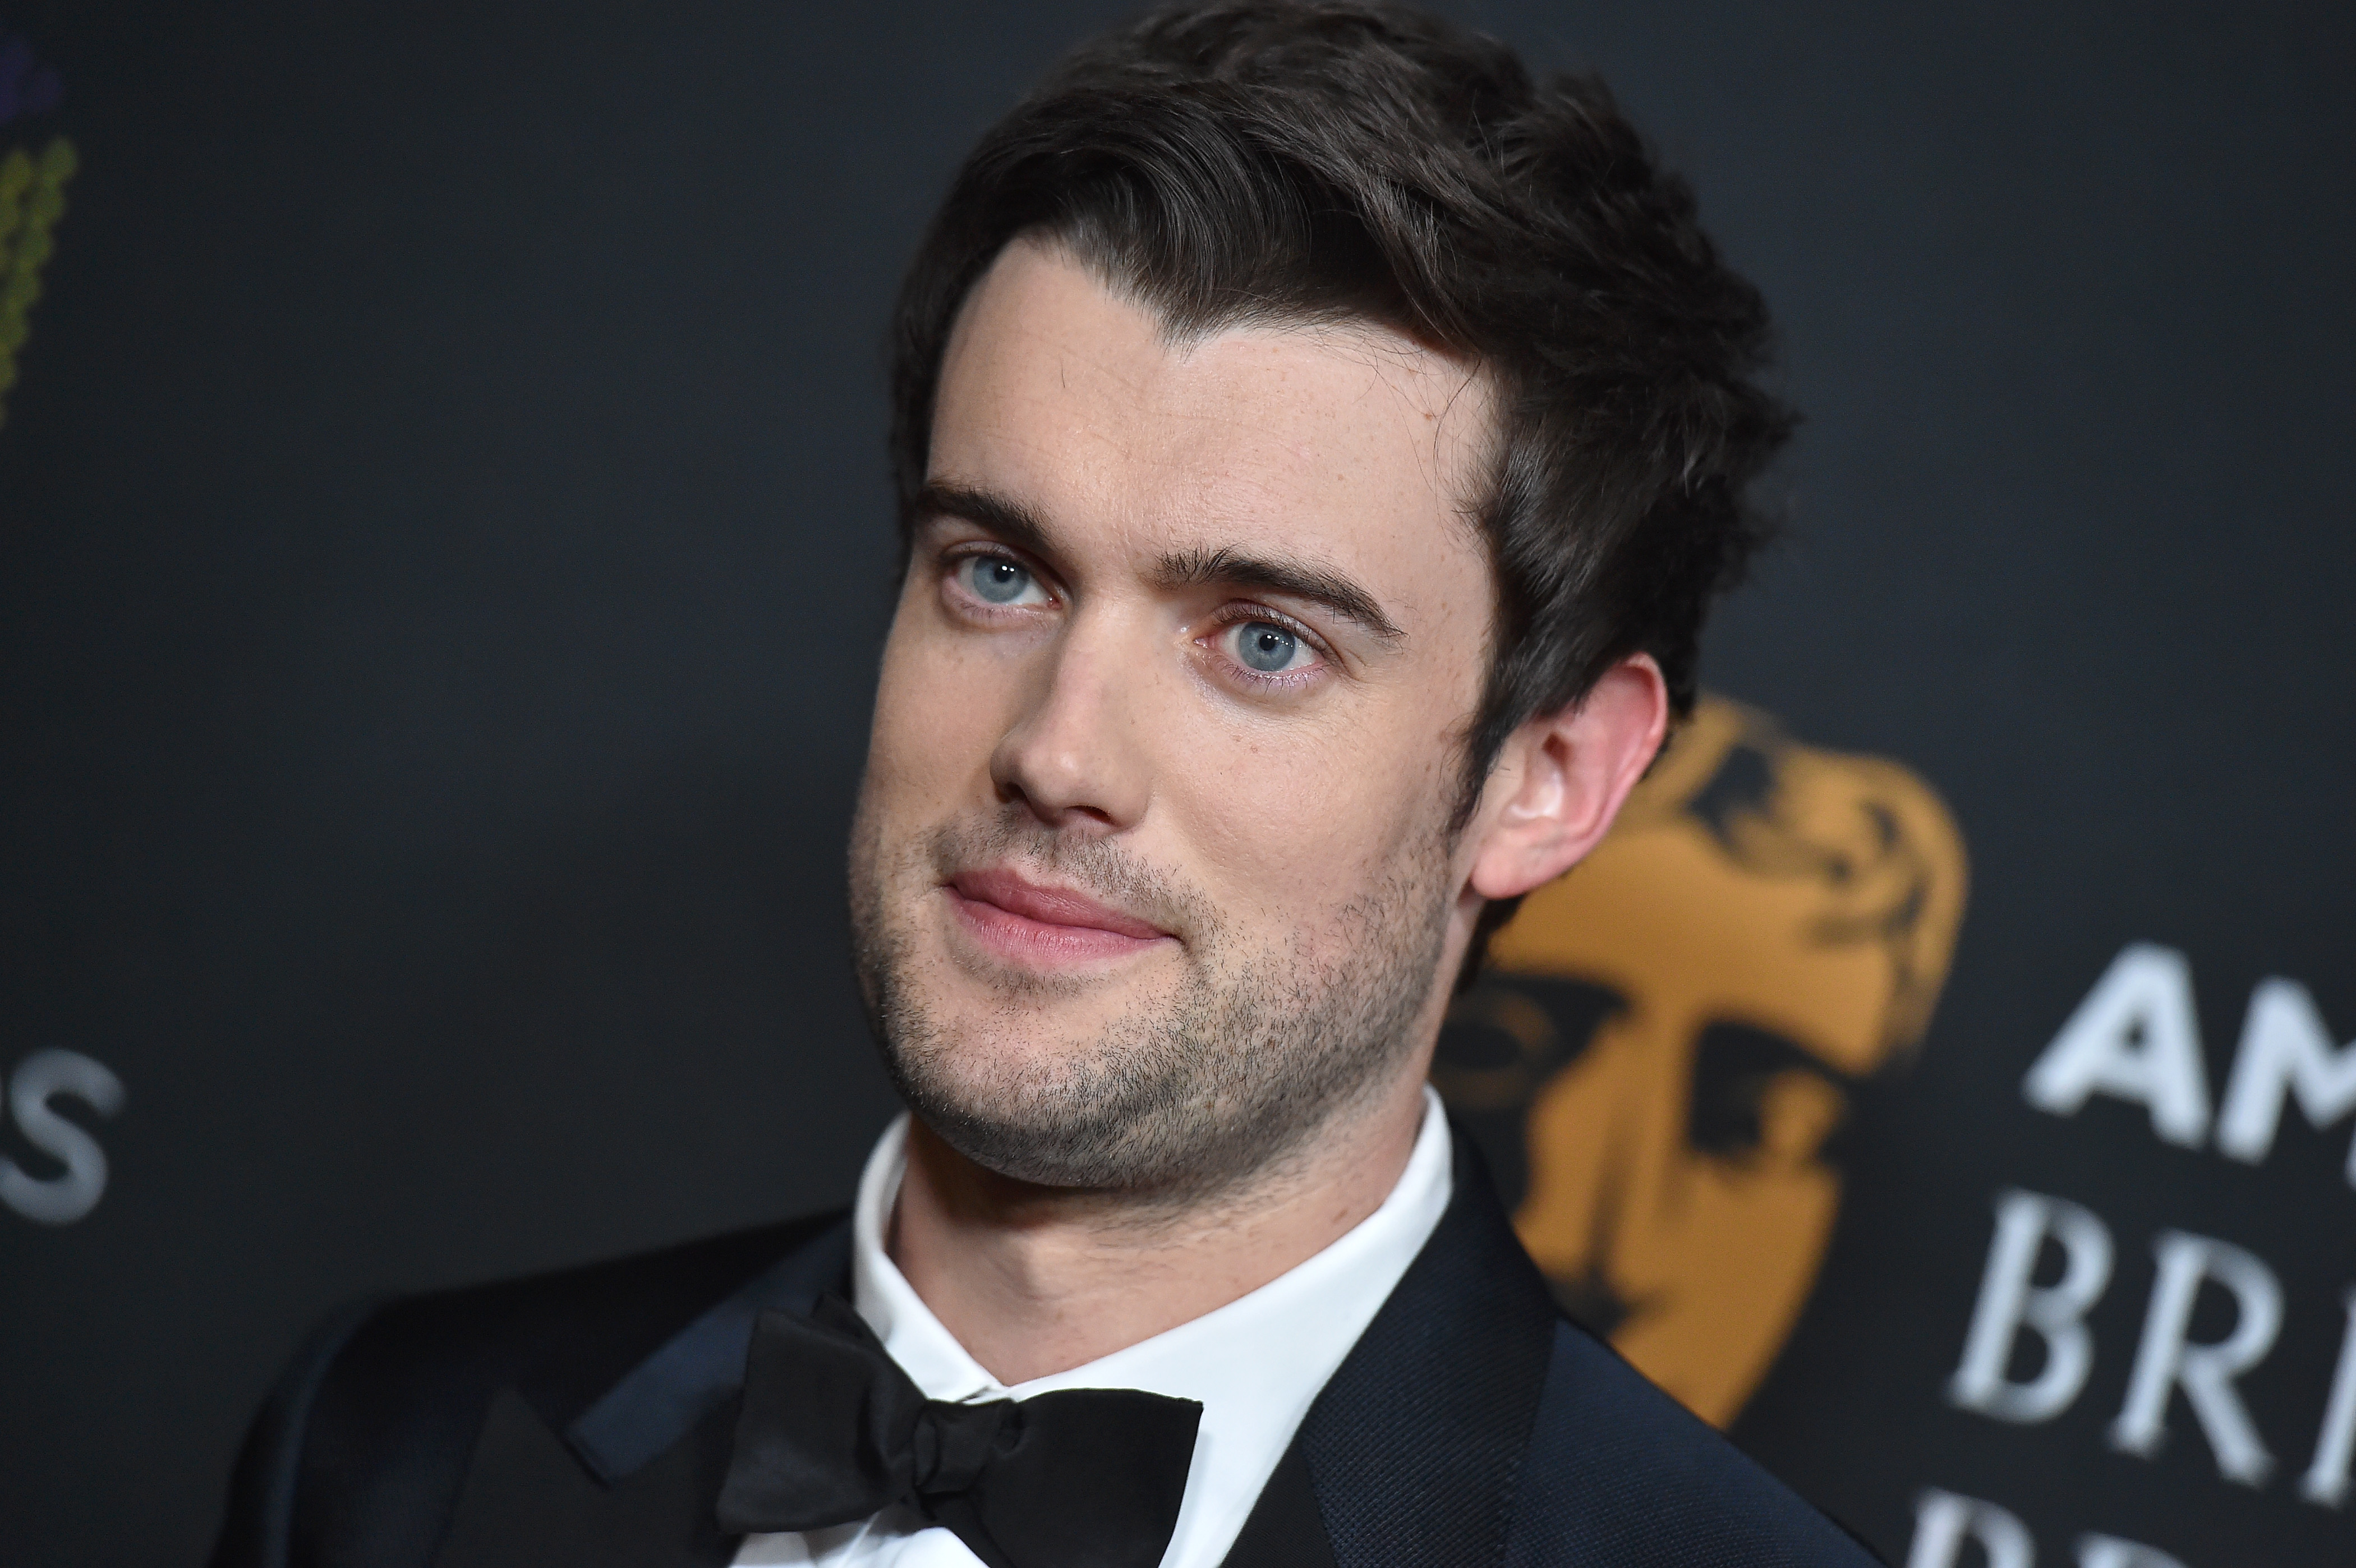 Jack Whitehall's heartfelt coming out scene in Disney's Jungle Cruise 'won't use the word gay'